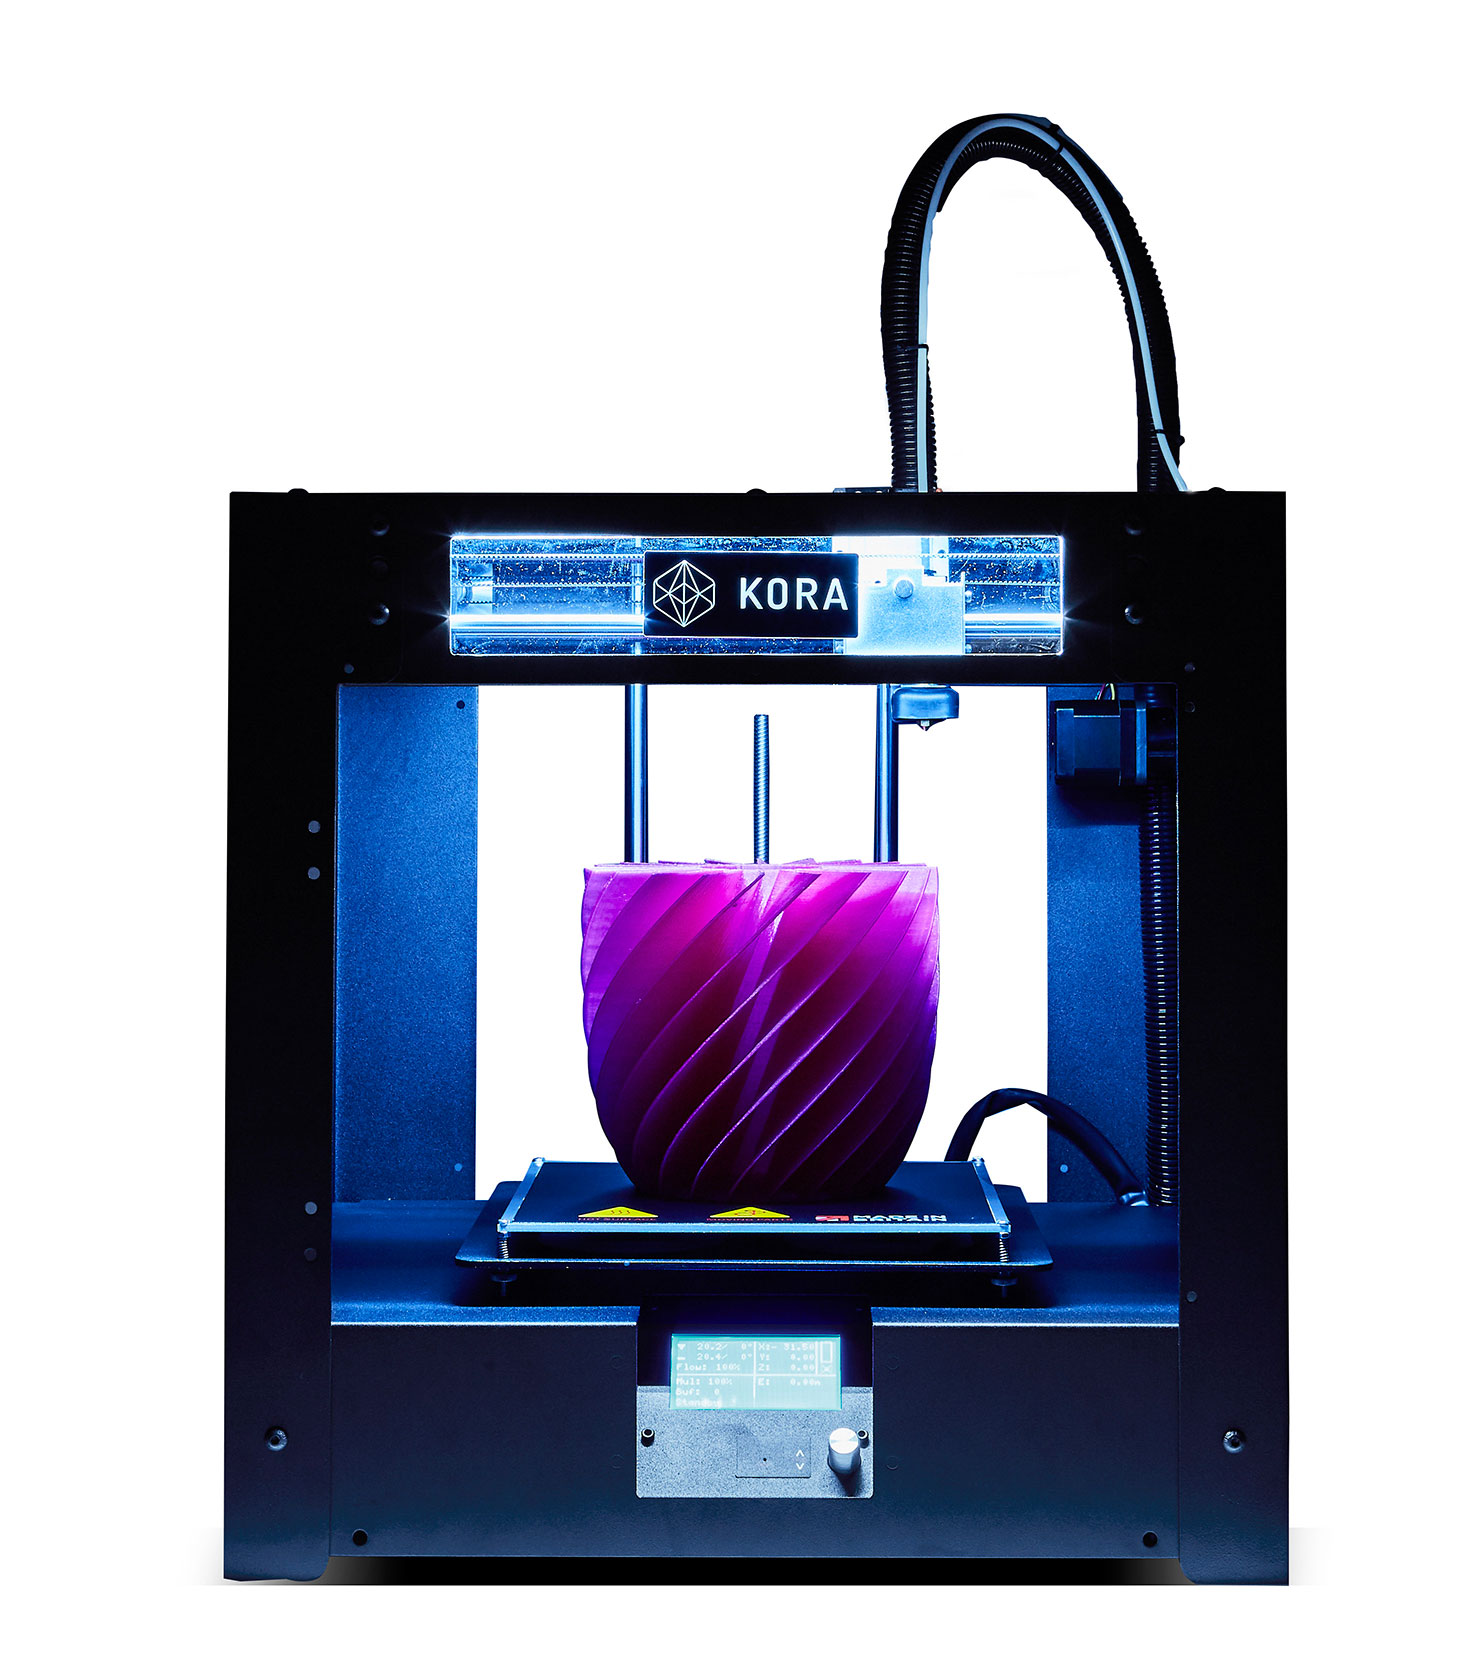 Kora Pro 3D PC Printer